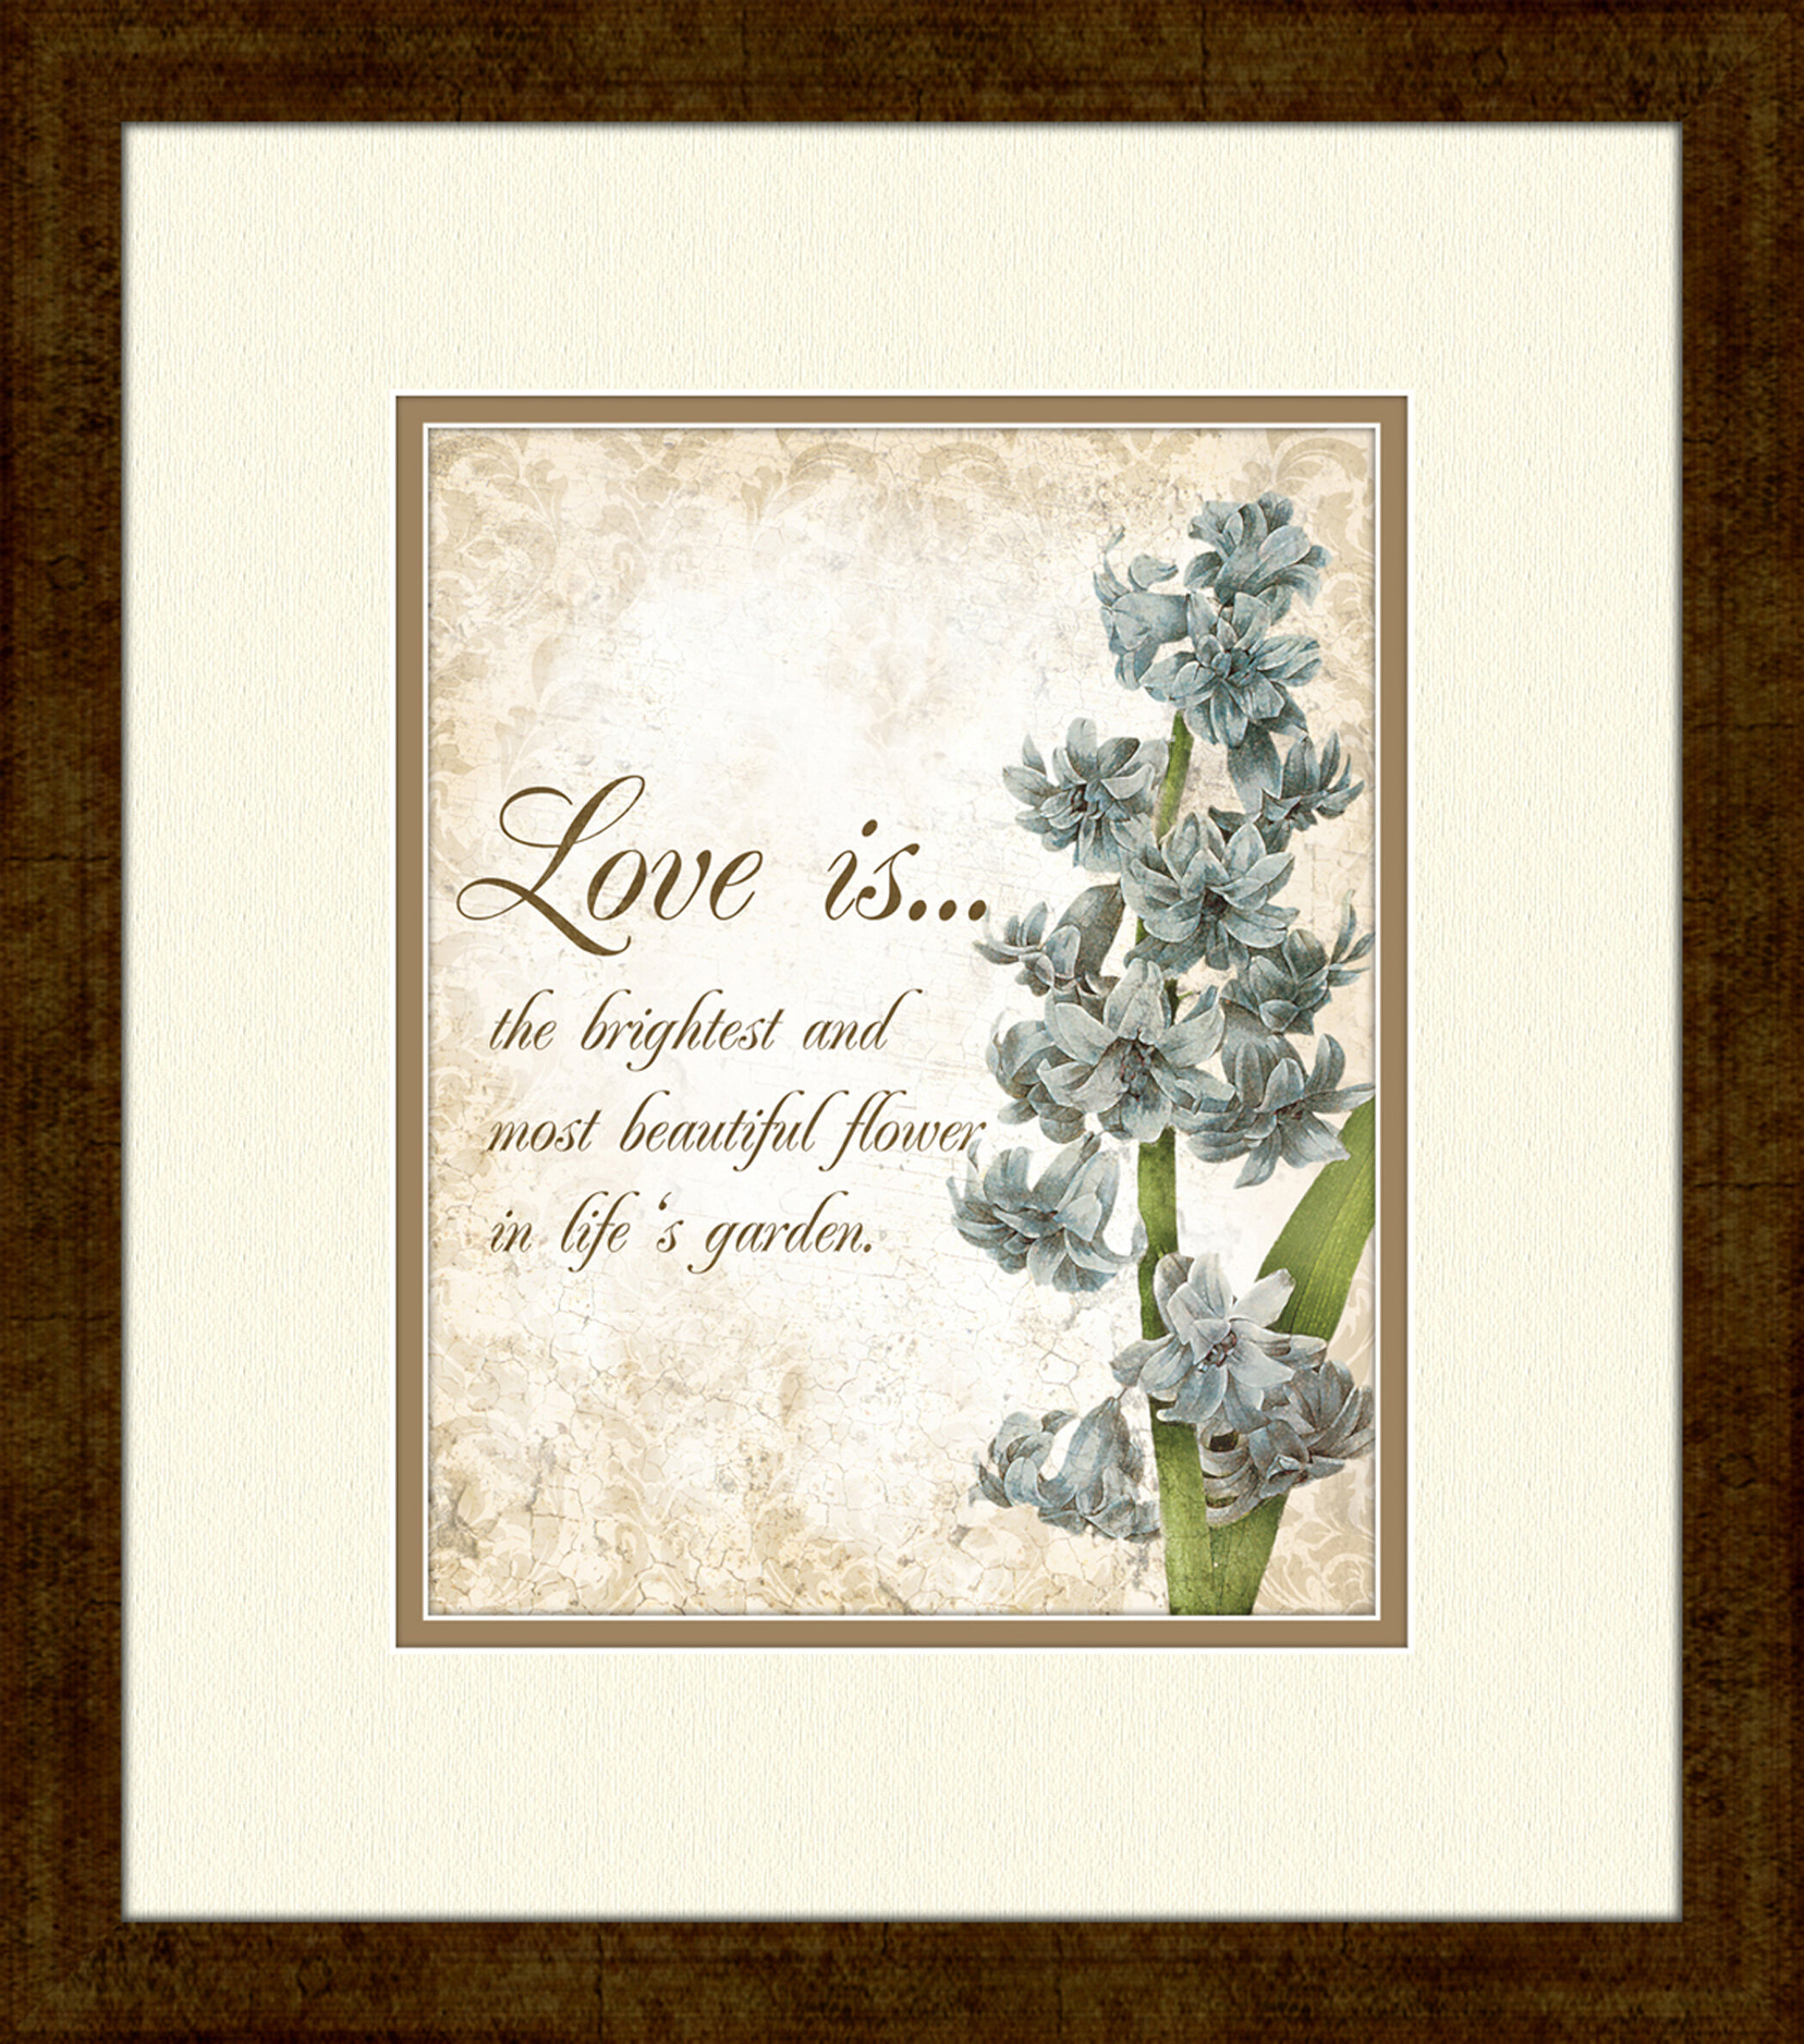 Ptm Images Love Is B Picture Frame Graphic Art Print On Paper Wayfair